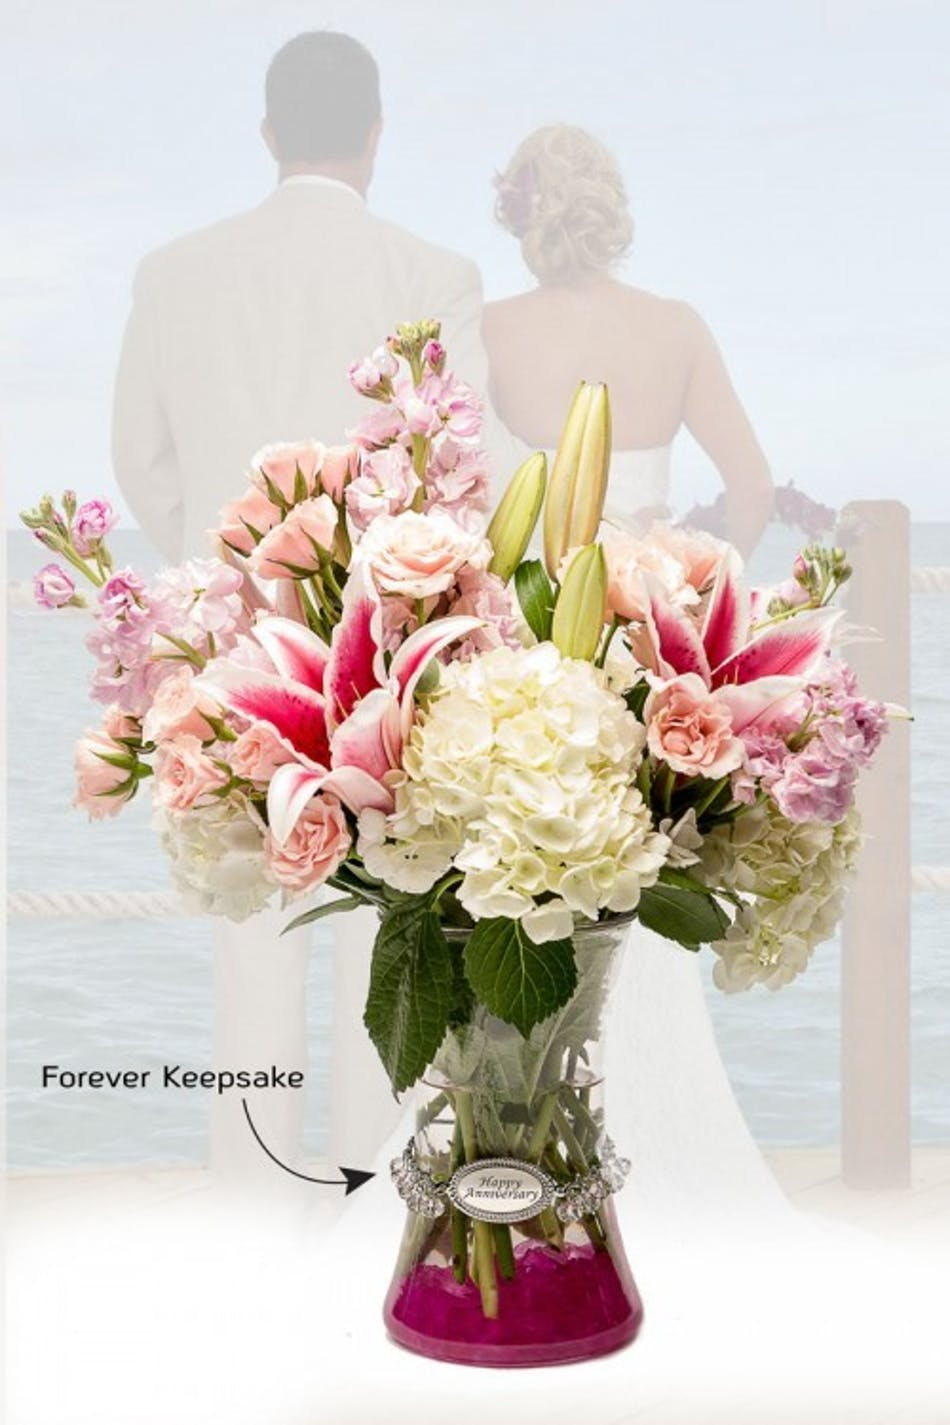 Vase Of Life Happy Anniversary Celebrate And Honor All Your